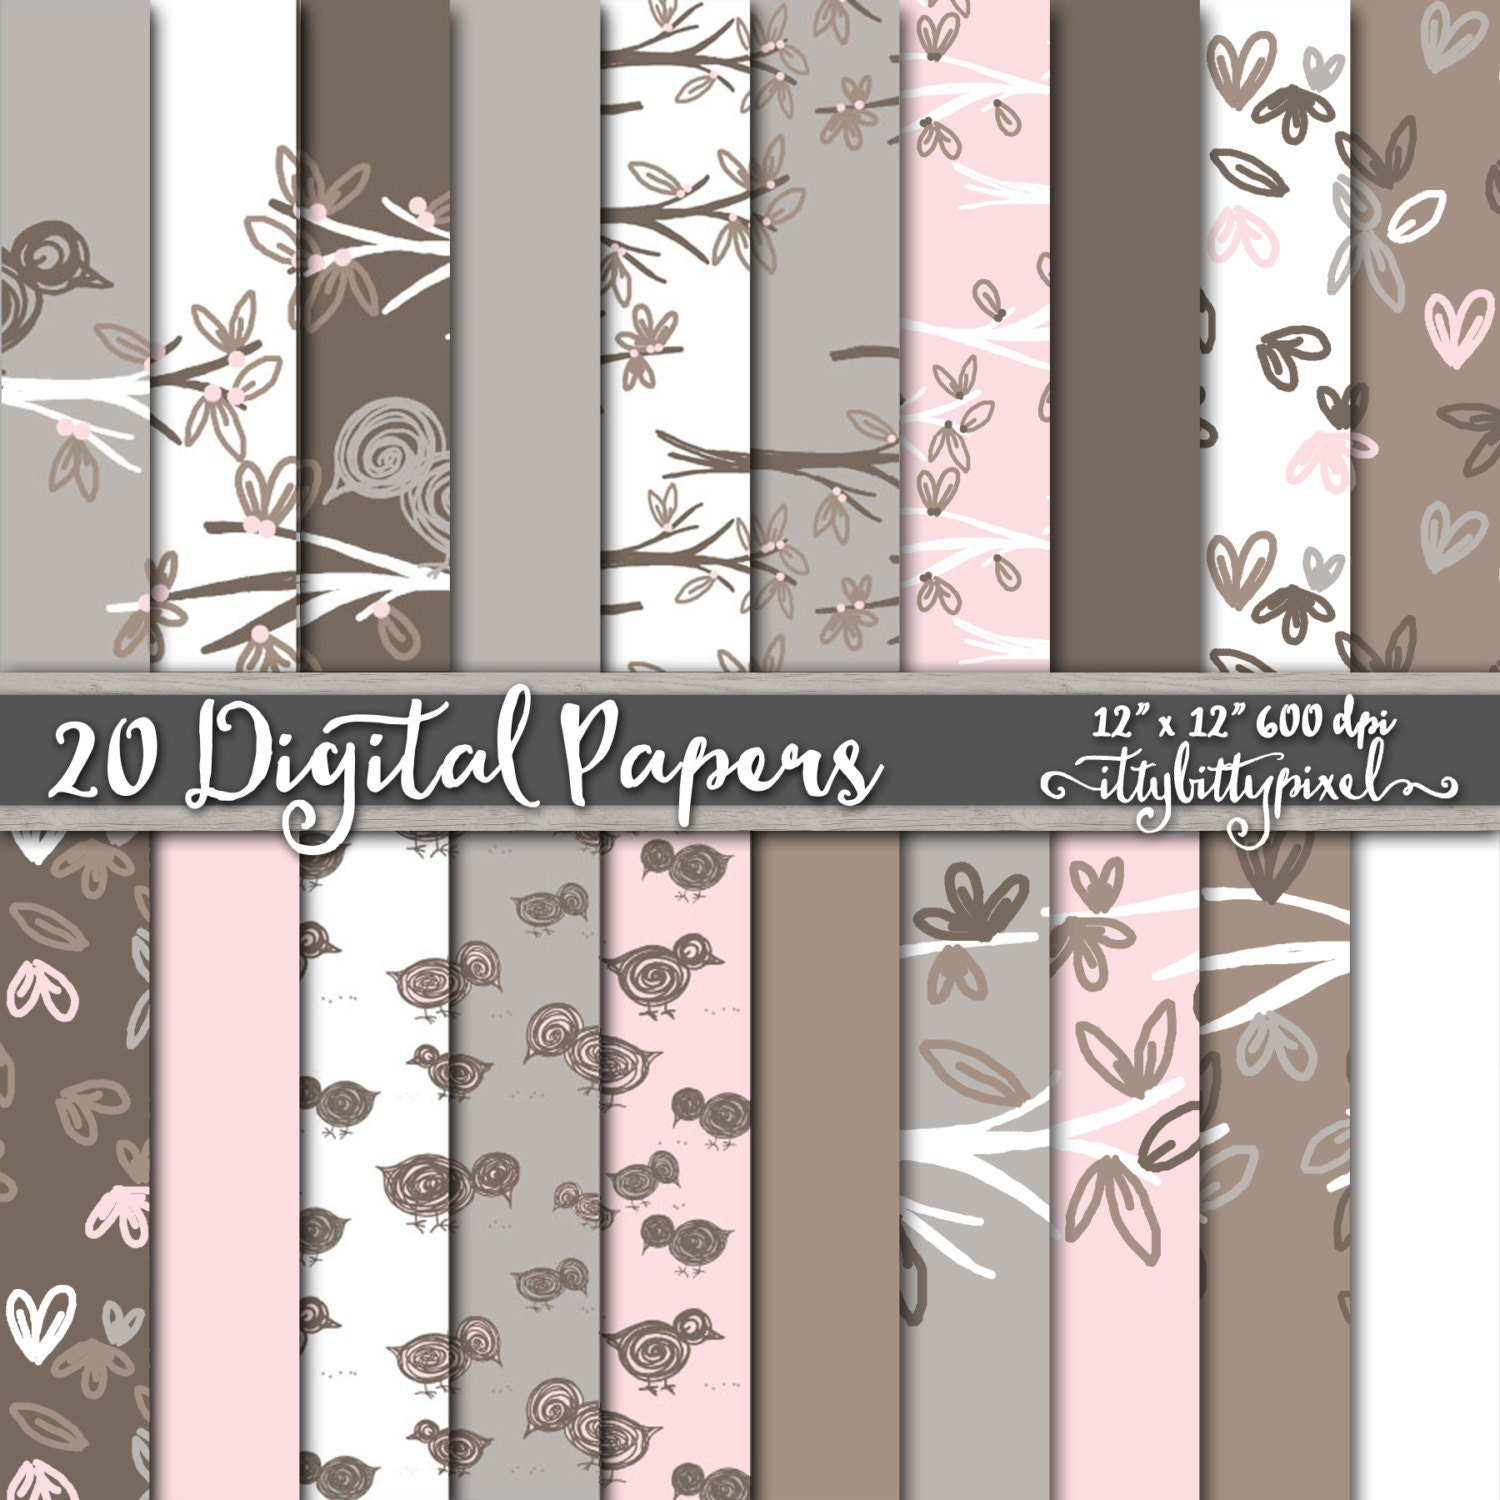 Scrapbook paper companies - This Is A Digital File